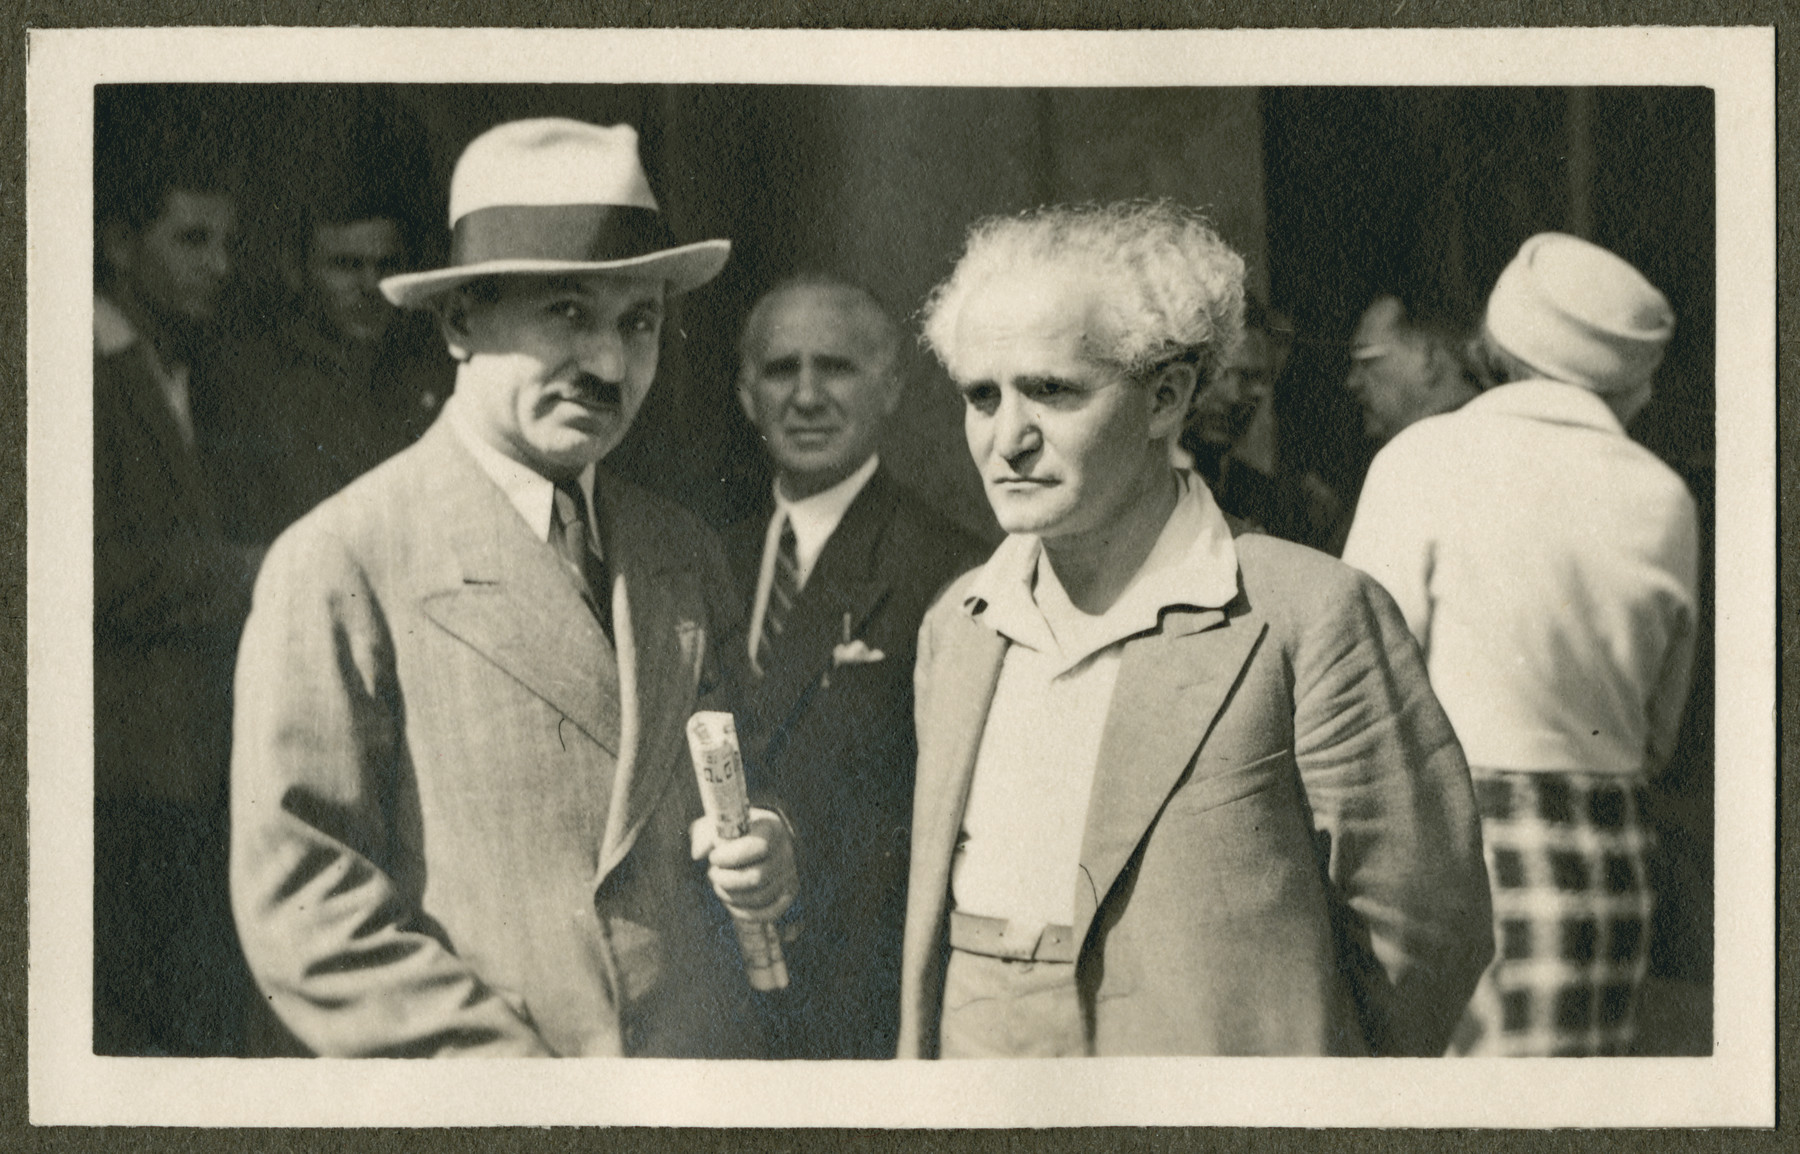 David Ben Gurion (right) poses with another man probably during the 18th Zionist Congress.